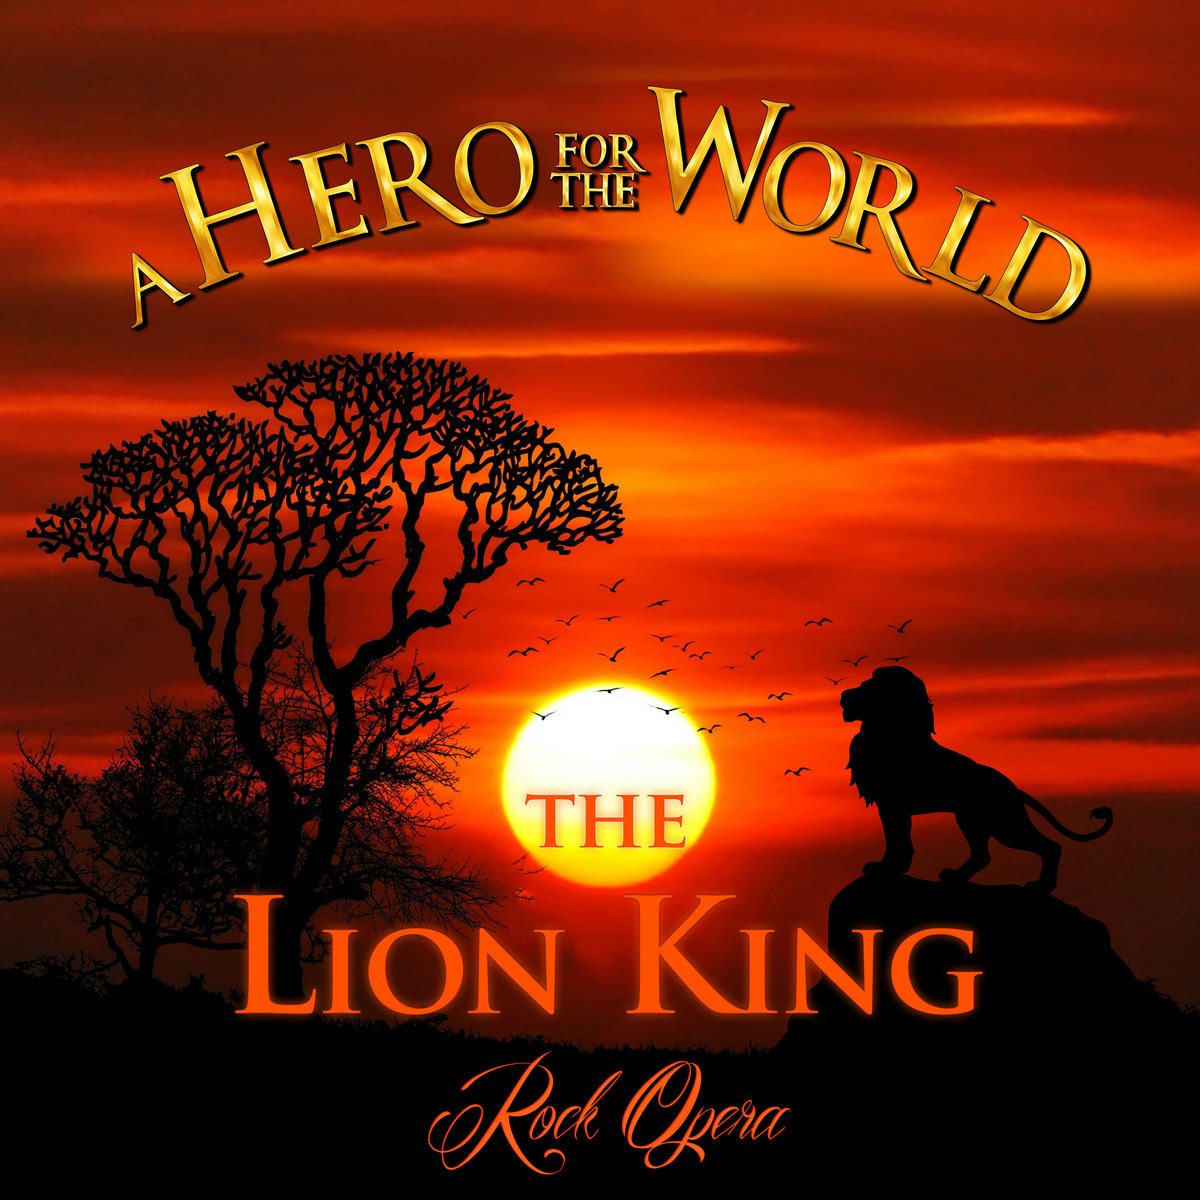 The Lion King Rock Opera Deluxe Extended Edition A Hero